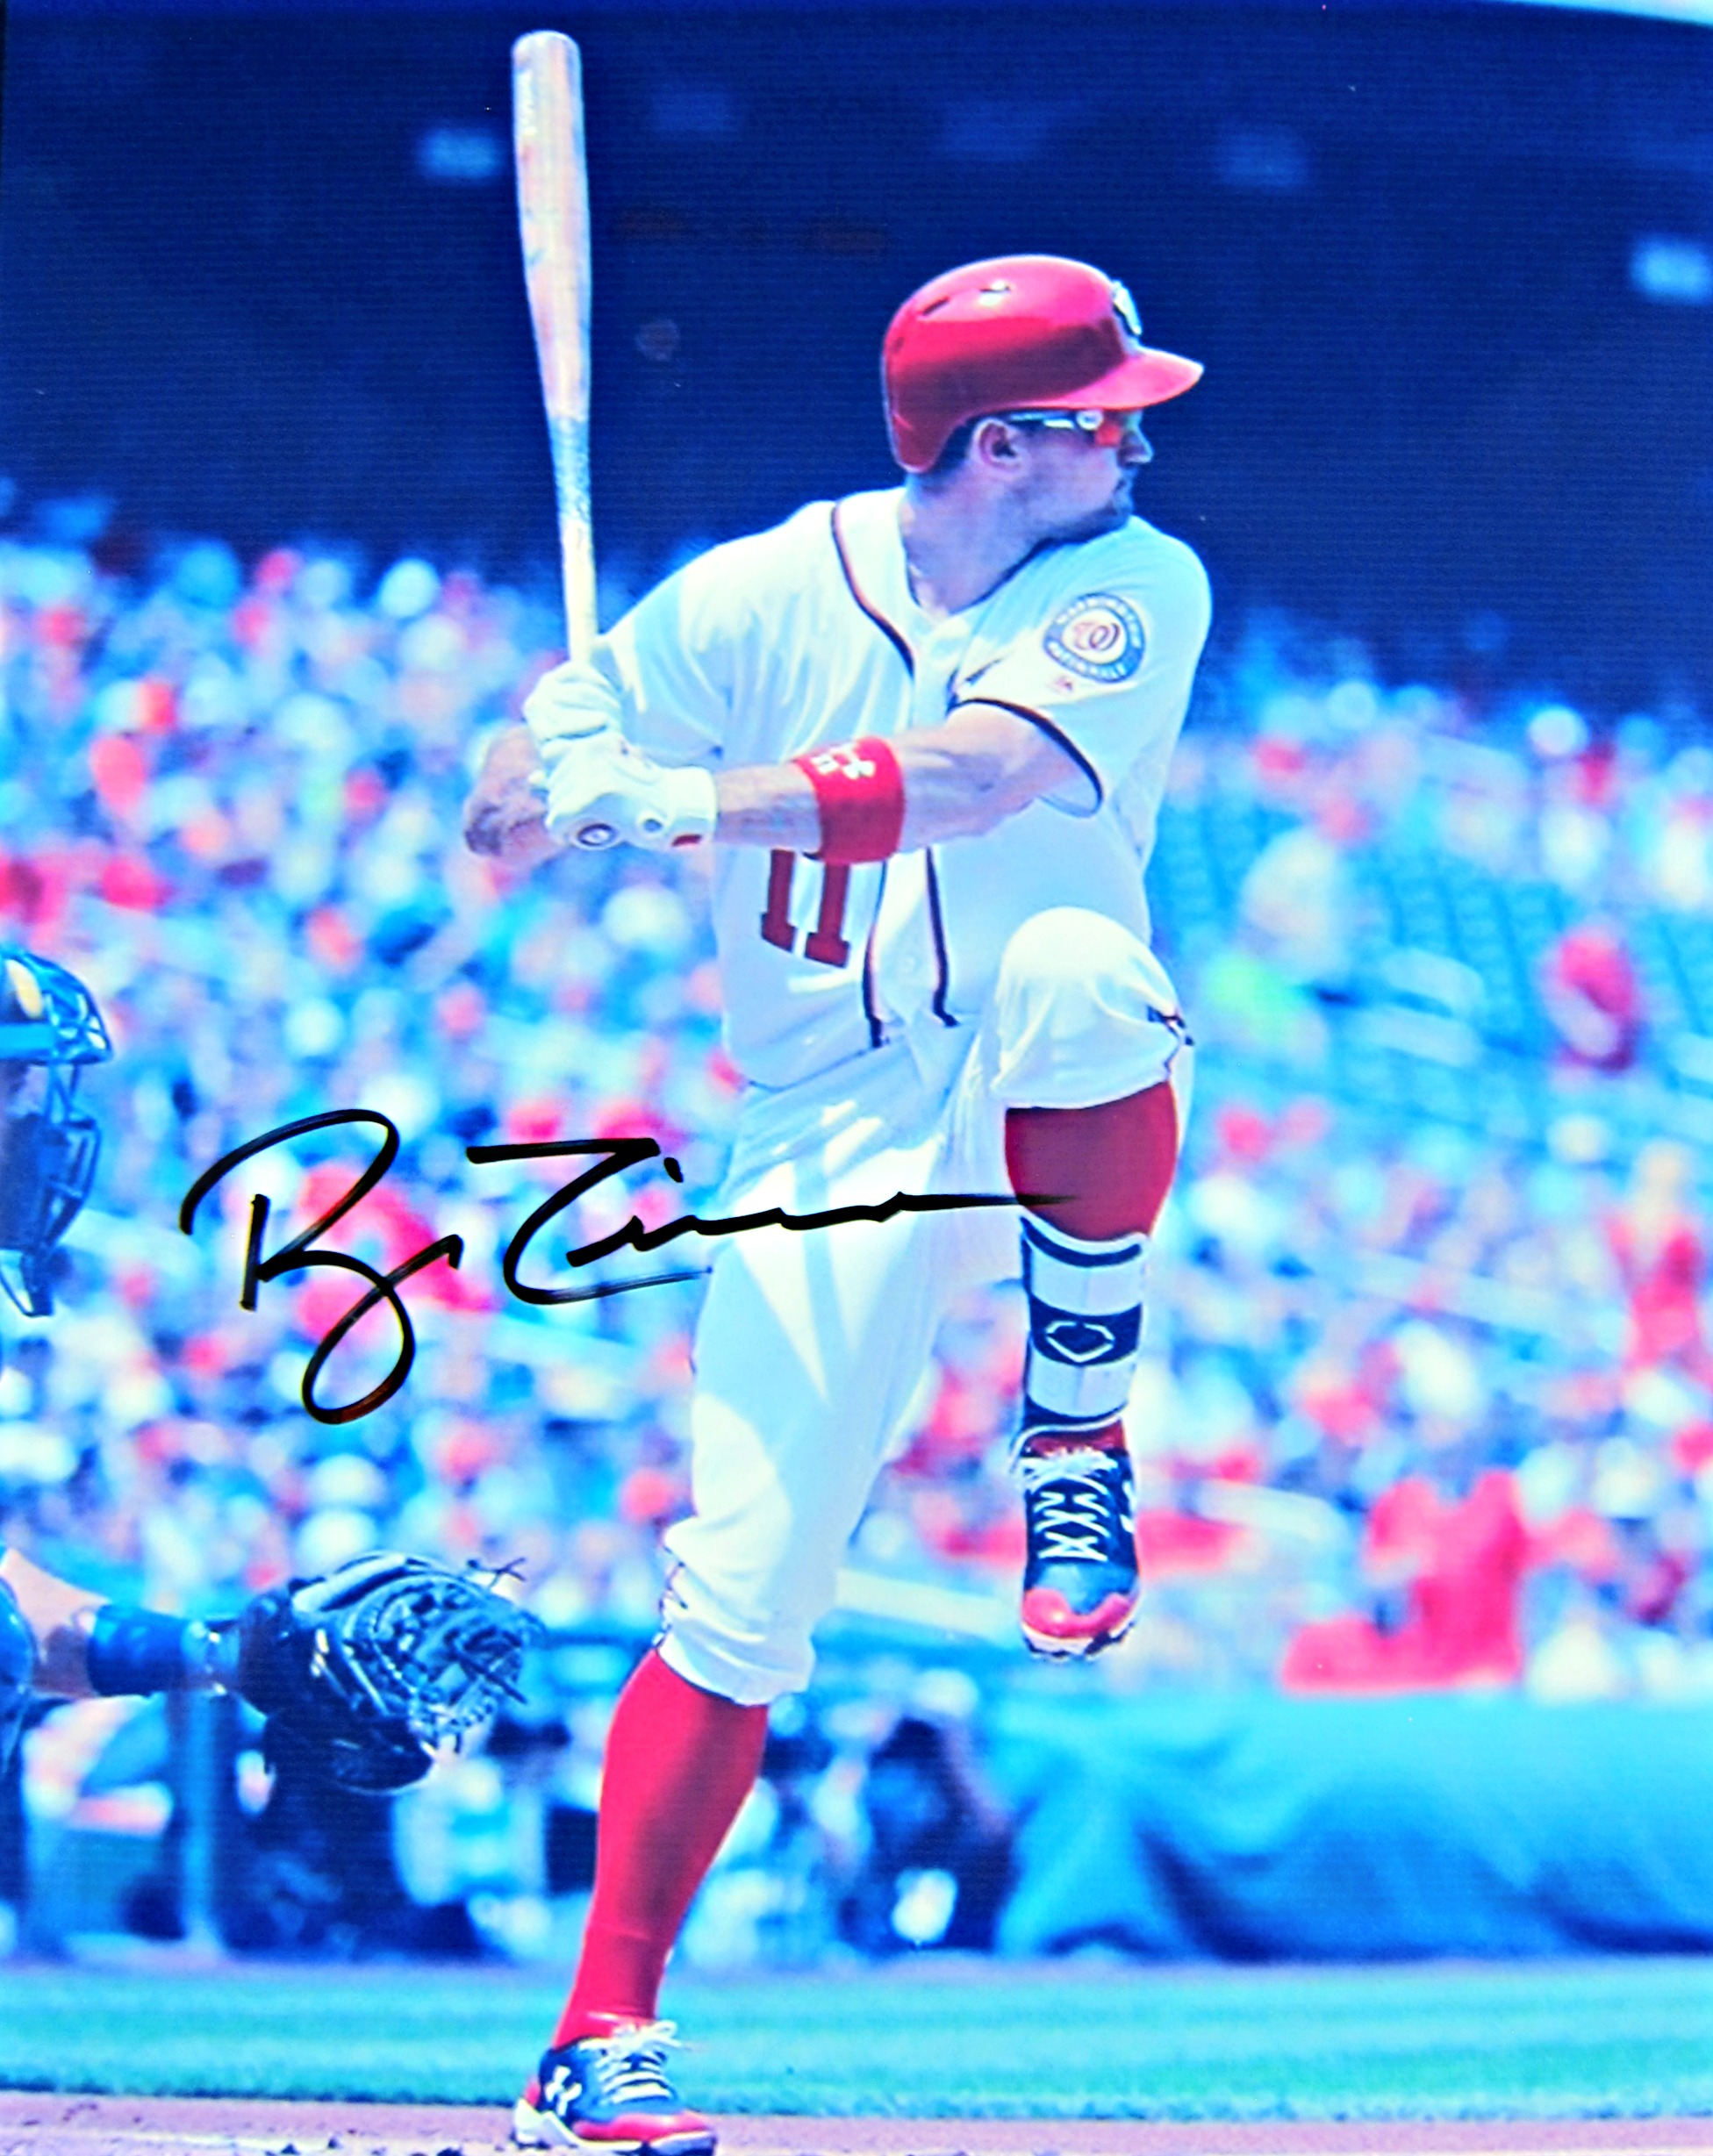 ryan-zimmerman-signed-photo